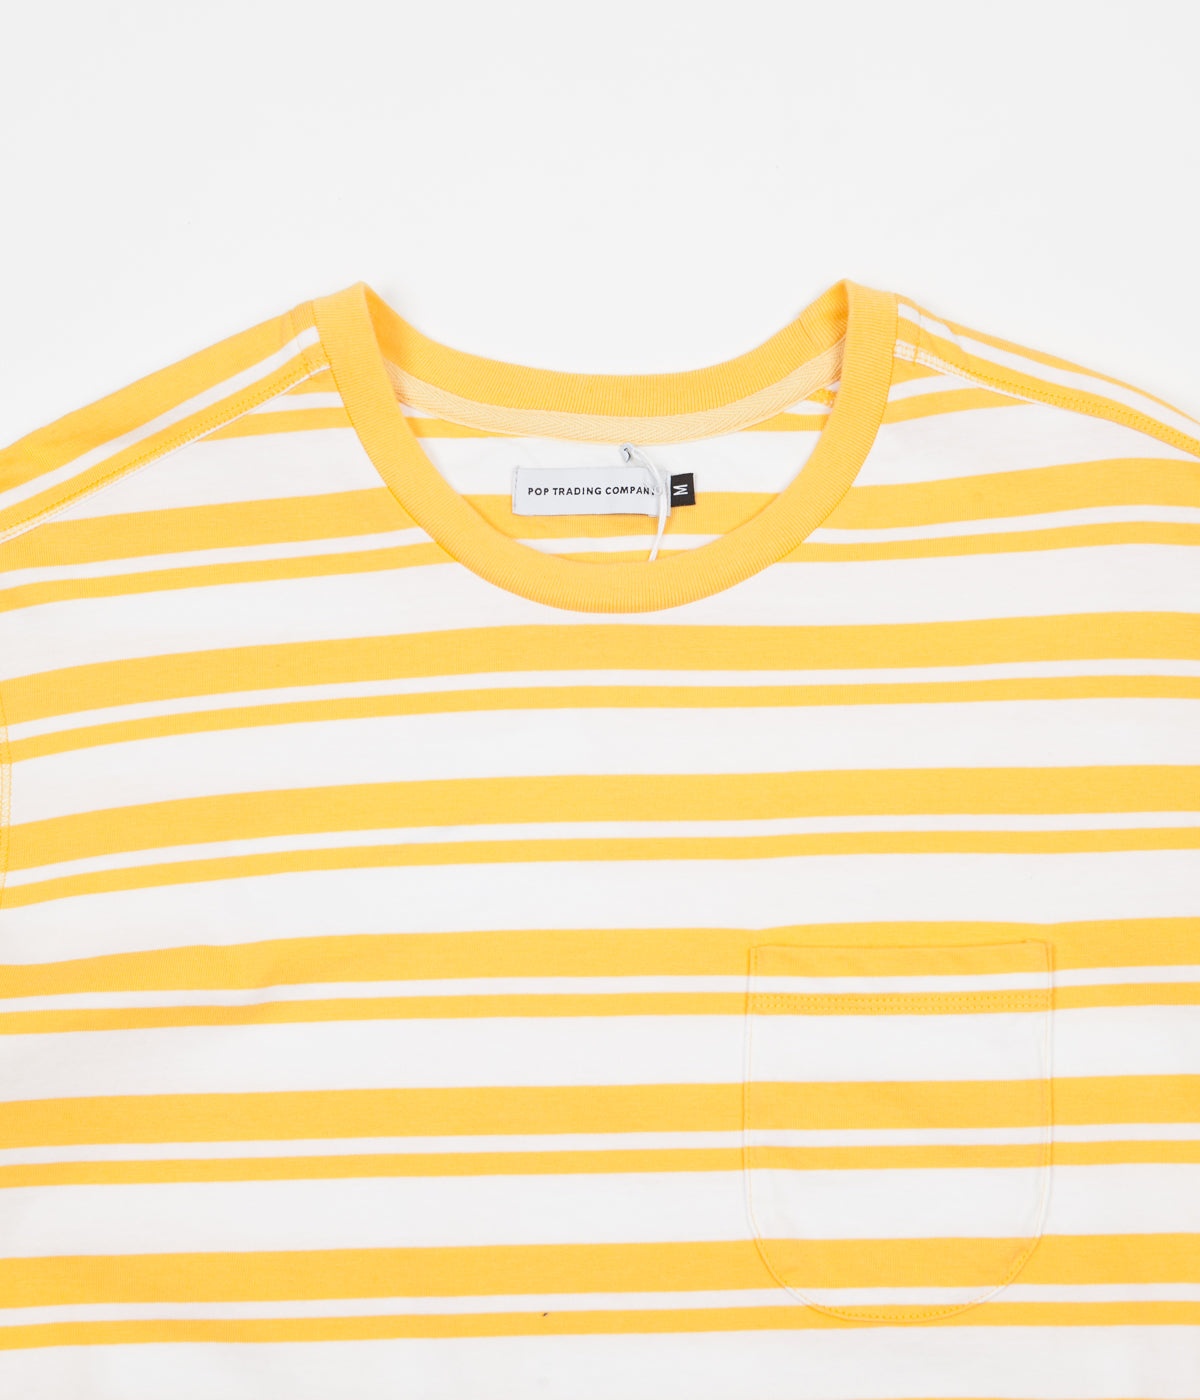 fcac25f43138f8 ... Pop Trading Company Striped Pocket T-Shirt - Yellow   White ...